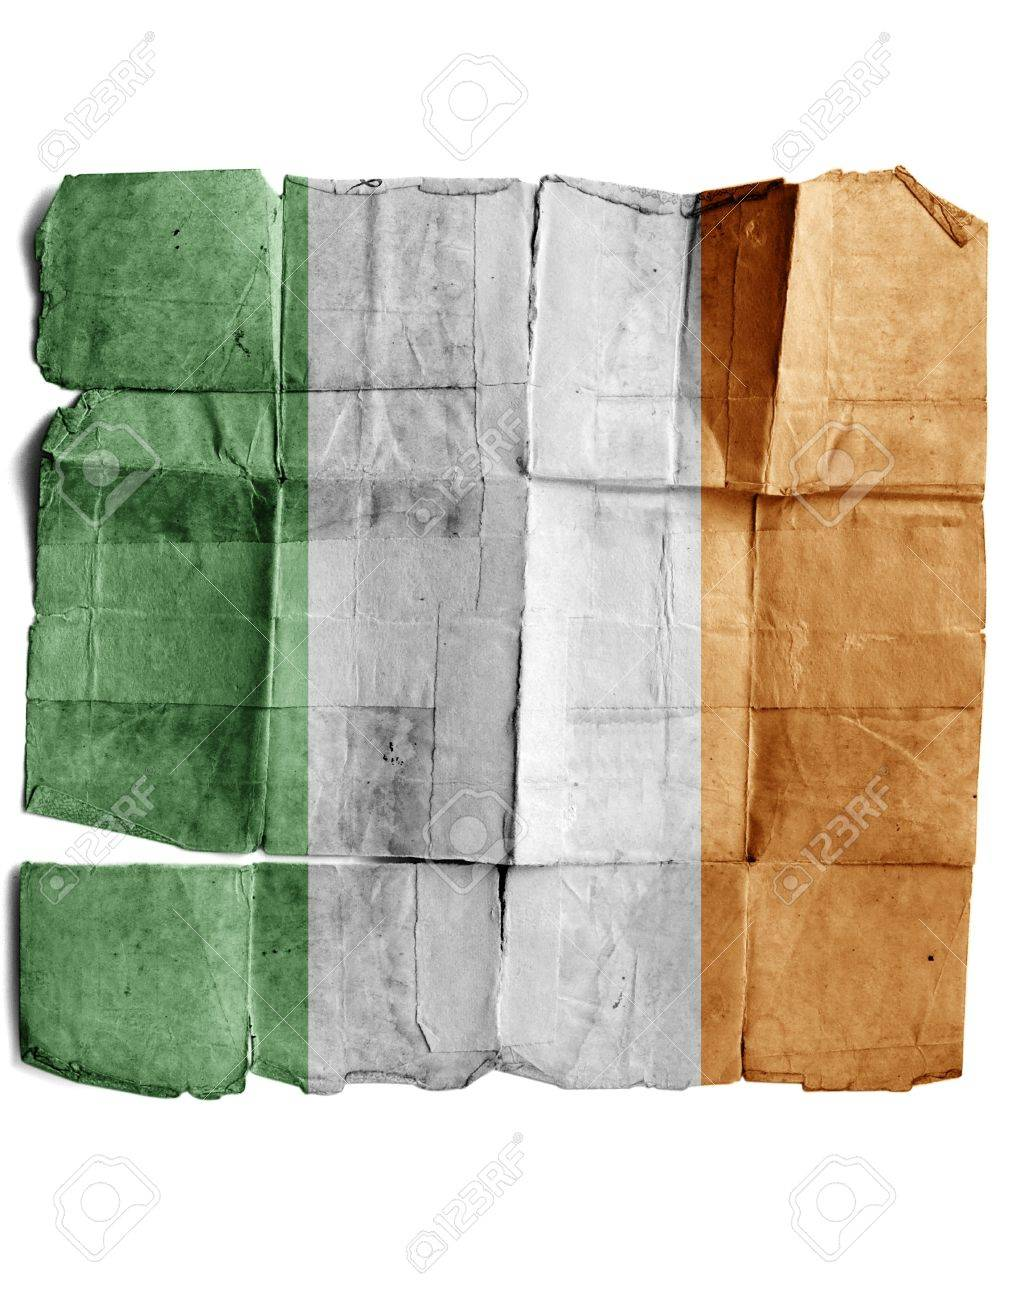 Ireland flag on old paper. Stock Photo - 17463141